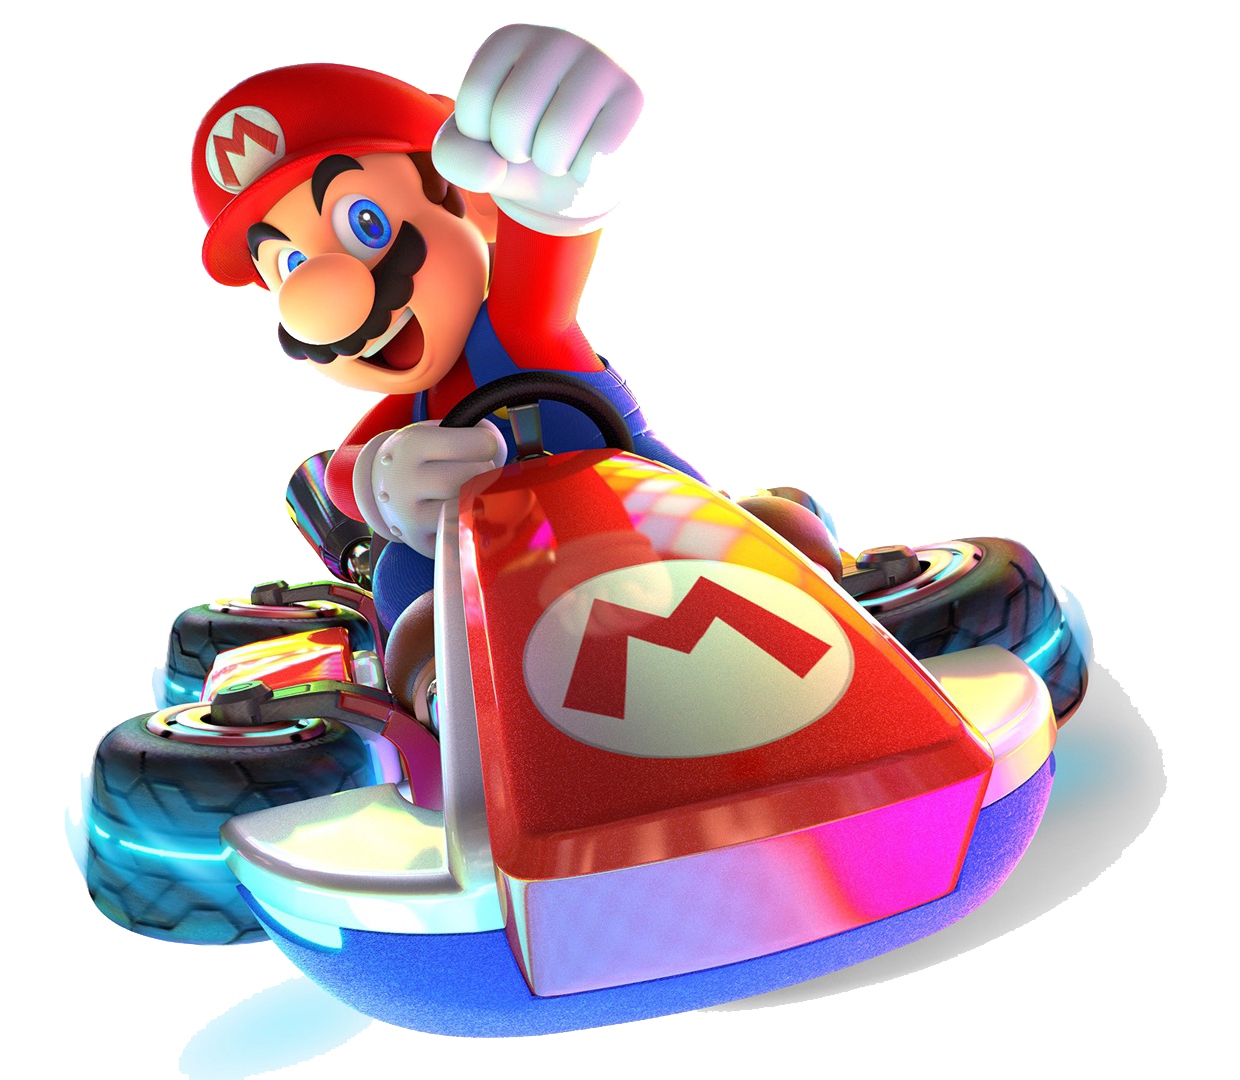 mario mario kart racing wiki fandom powered by wikia